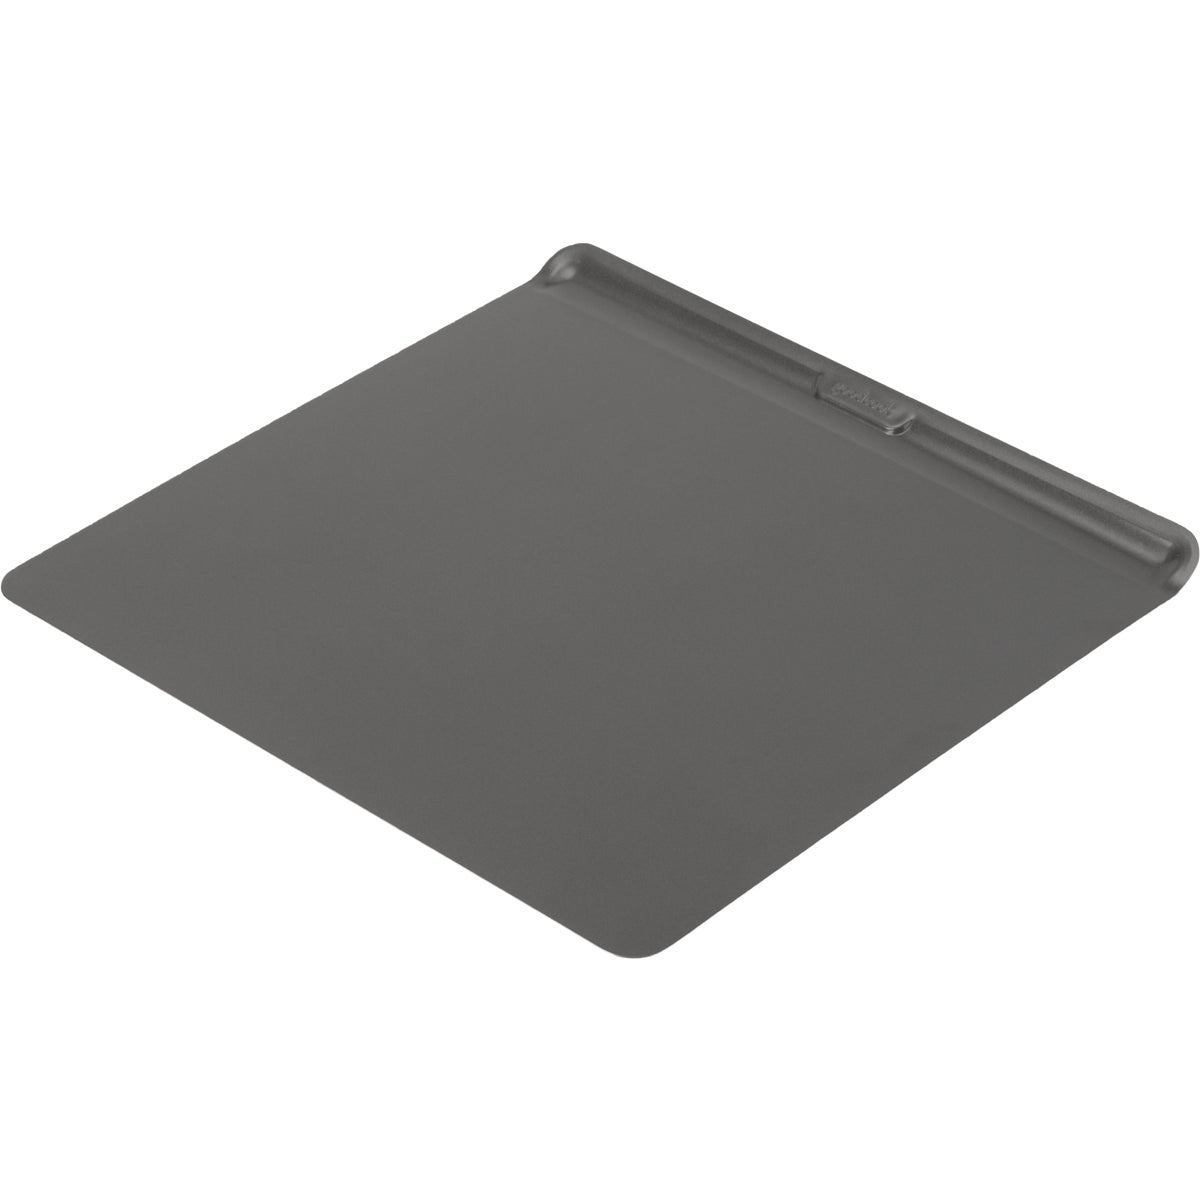 14X16 BAKING SHEET - J0824164 by T Fal Wearever